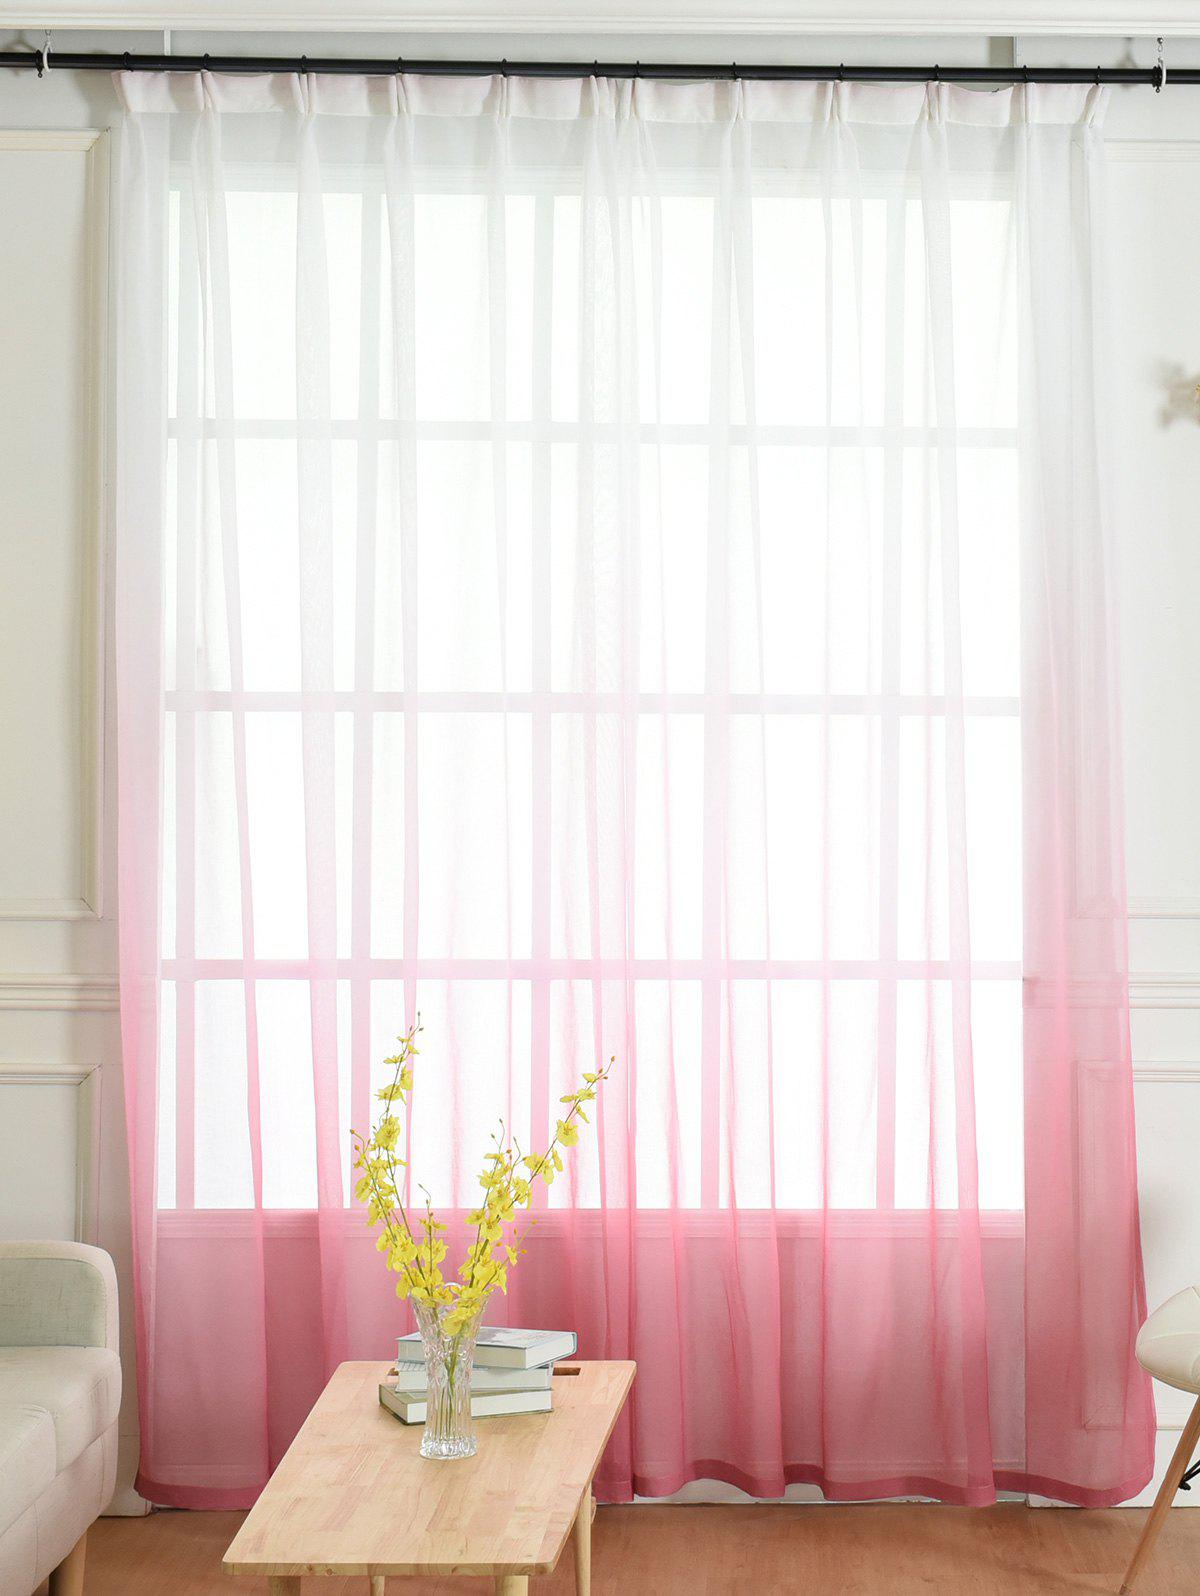 Window Screen Ombre Decorative Sheer Tulle CurtainHOME<br><br>Size: W54*L108INCH; Color: PINK; Applicable Window Type: French Window; Function: Translucidus (Shading Rate 1%-40%); Installation Type: Ceiling Installation; Location: Window; Material: Polyester / Cotton; Opening and Closing Method: Left and Right Biparting Open; Processing: Hook; Processing Accessories Cost: Excluded; Style: European and American Style; Type: Curtain; Use: Cafe,Home,Hospital,Hotel,Office; Weight: 0.4725kg; Package Contents: 1 x Window Curtain 1 x Hooks (Set);